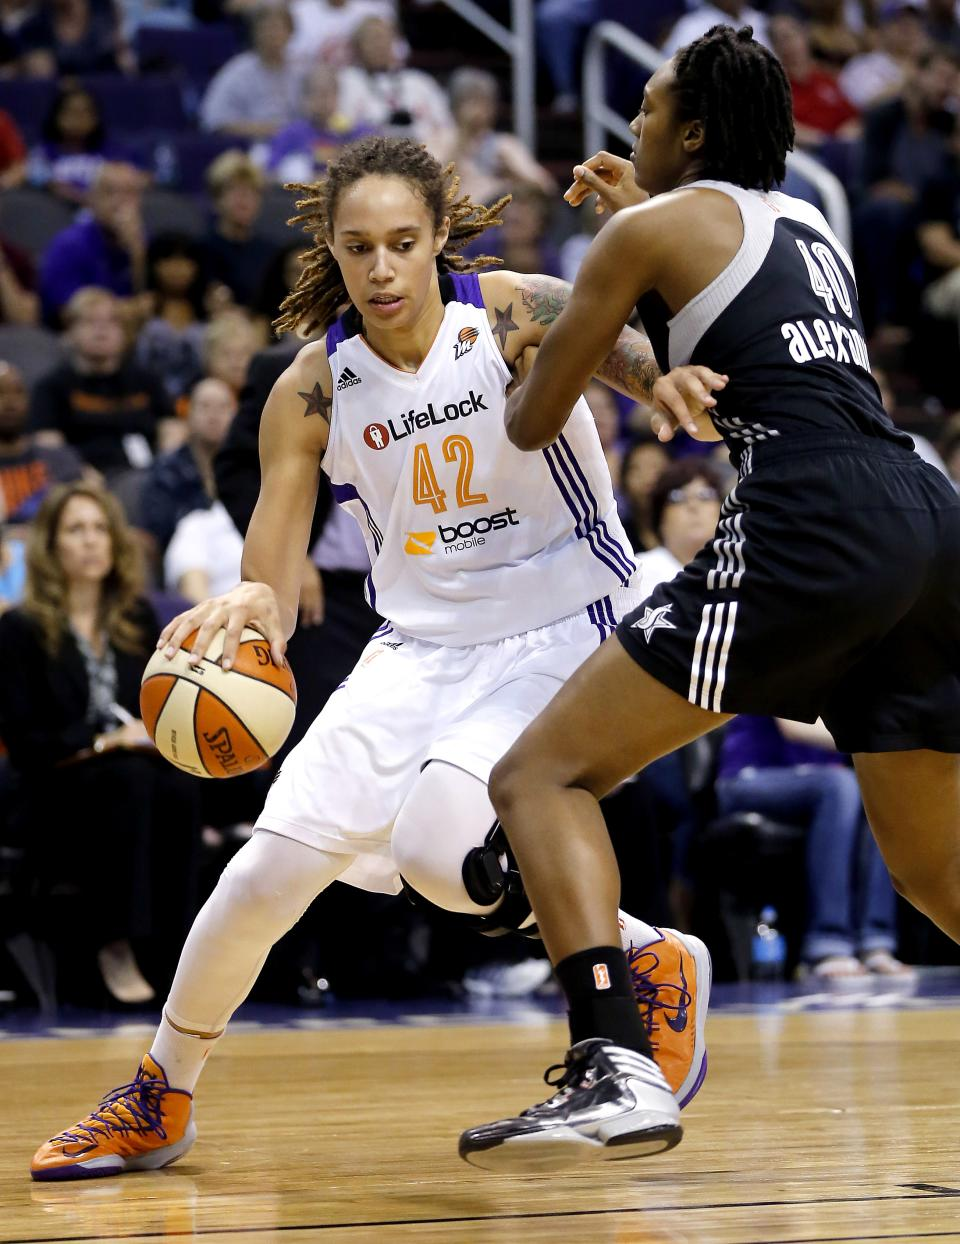 Taurasi leads Mercury over Silver Stars, 82-61